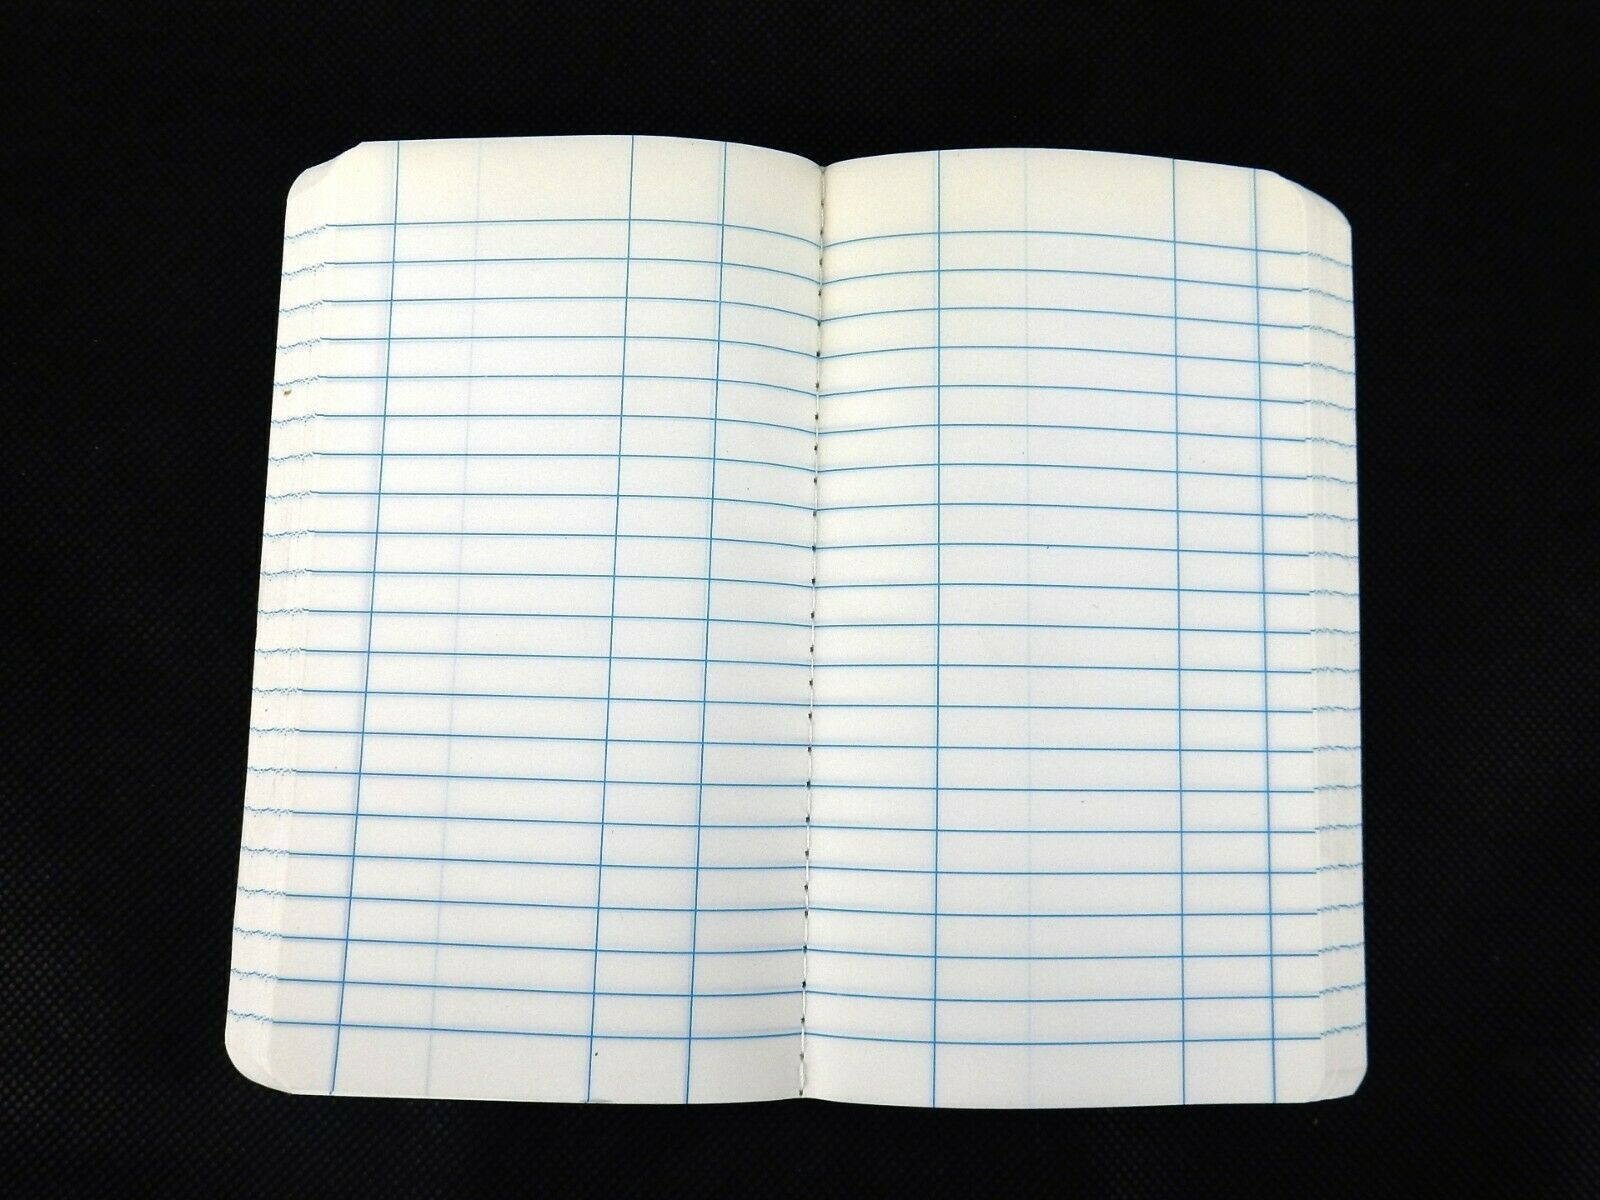 Primary image for Pocket Ledger Book, 100 2-Sided Sheets, Sales, Shopping, Expenses, Sweda #DK3110